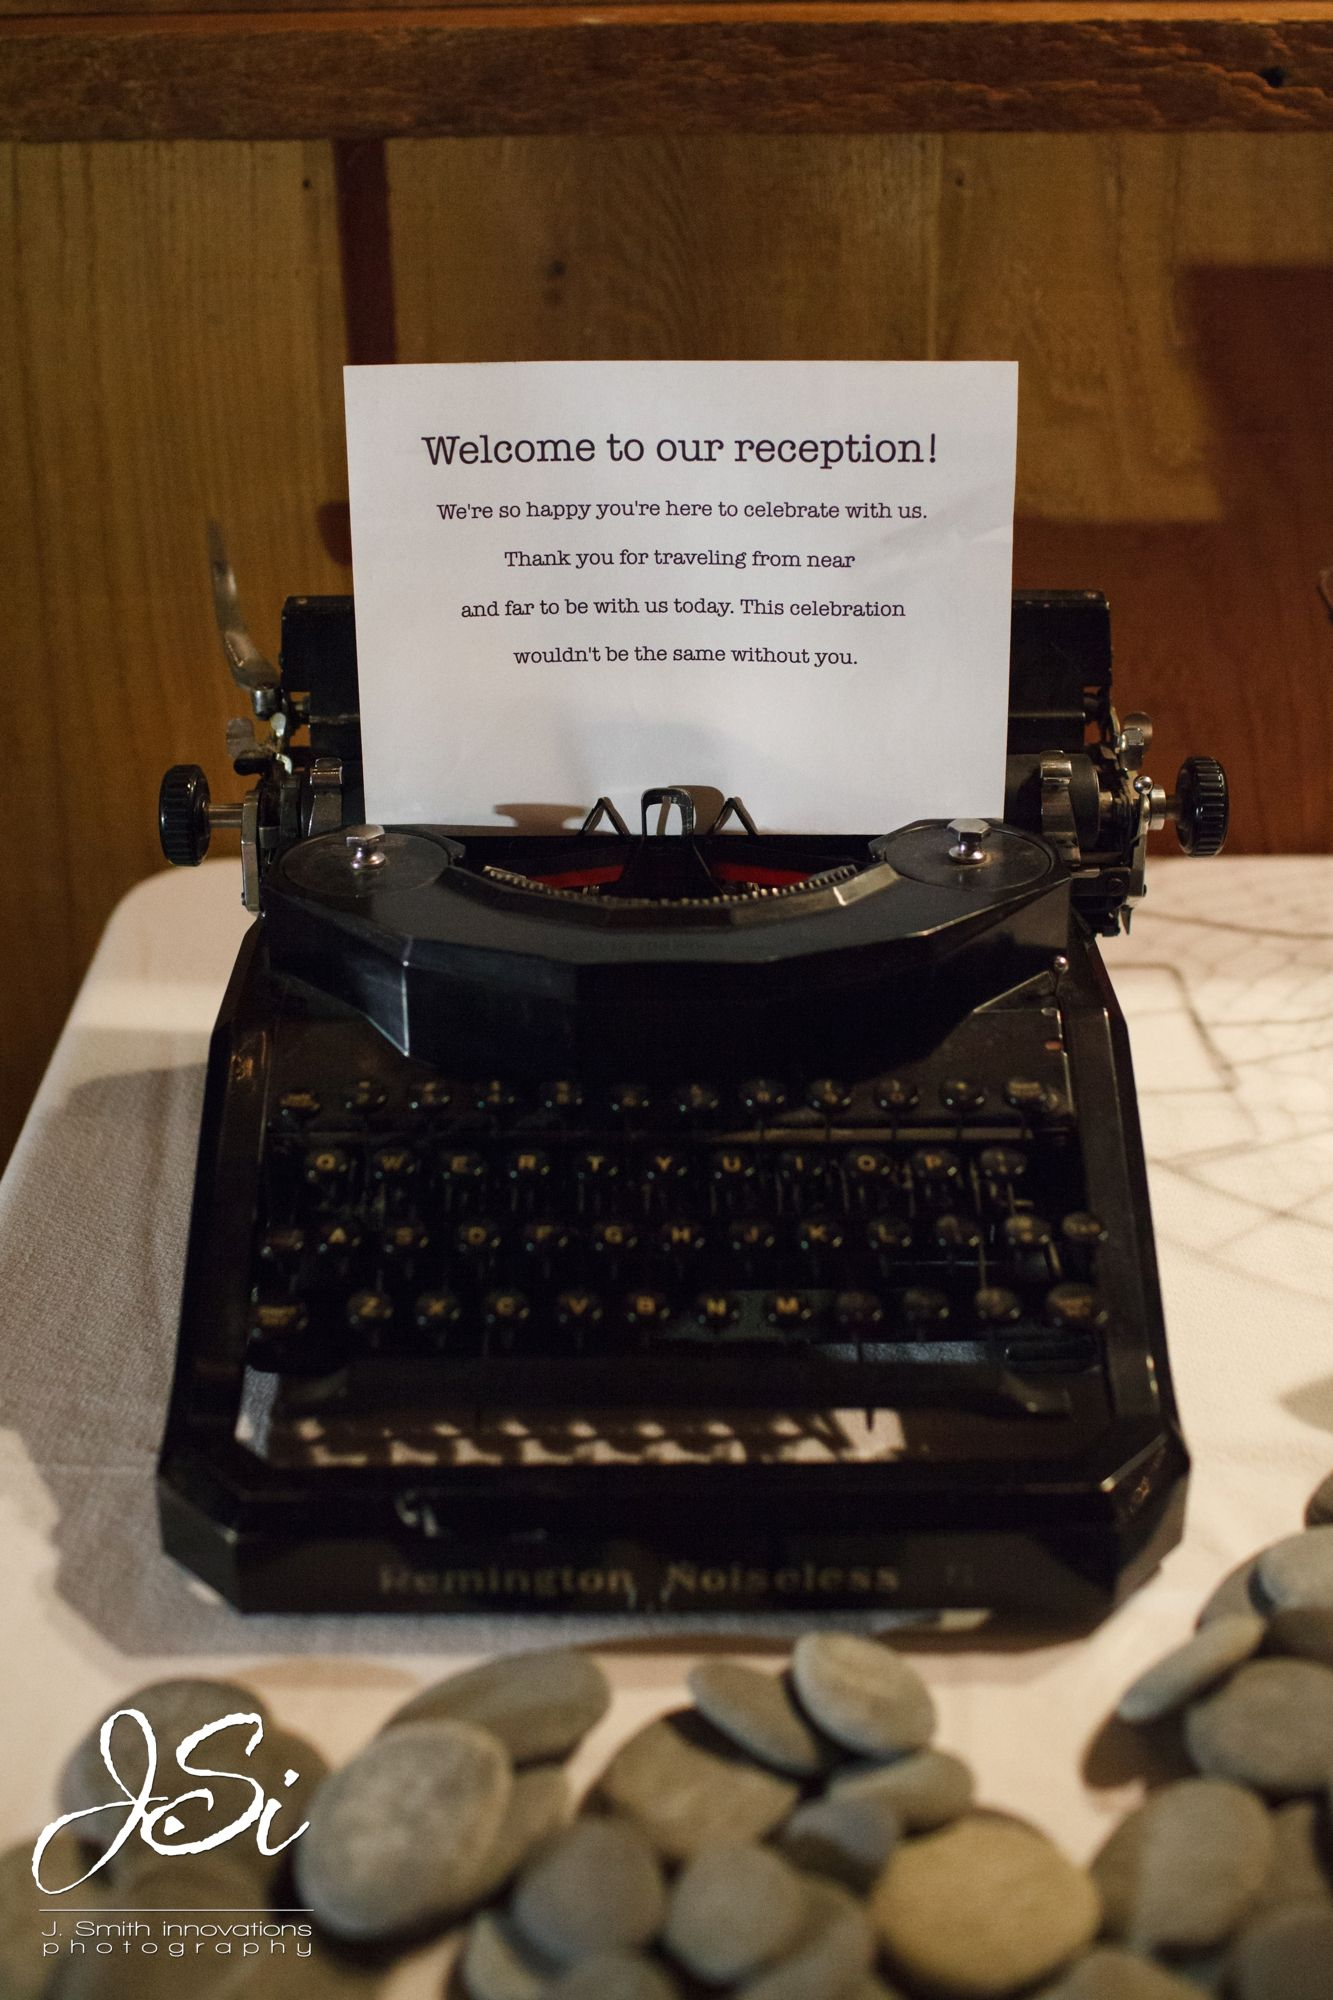 Welcome Message At Wedding Reception Using Antique Typewriter To